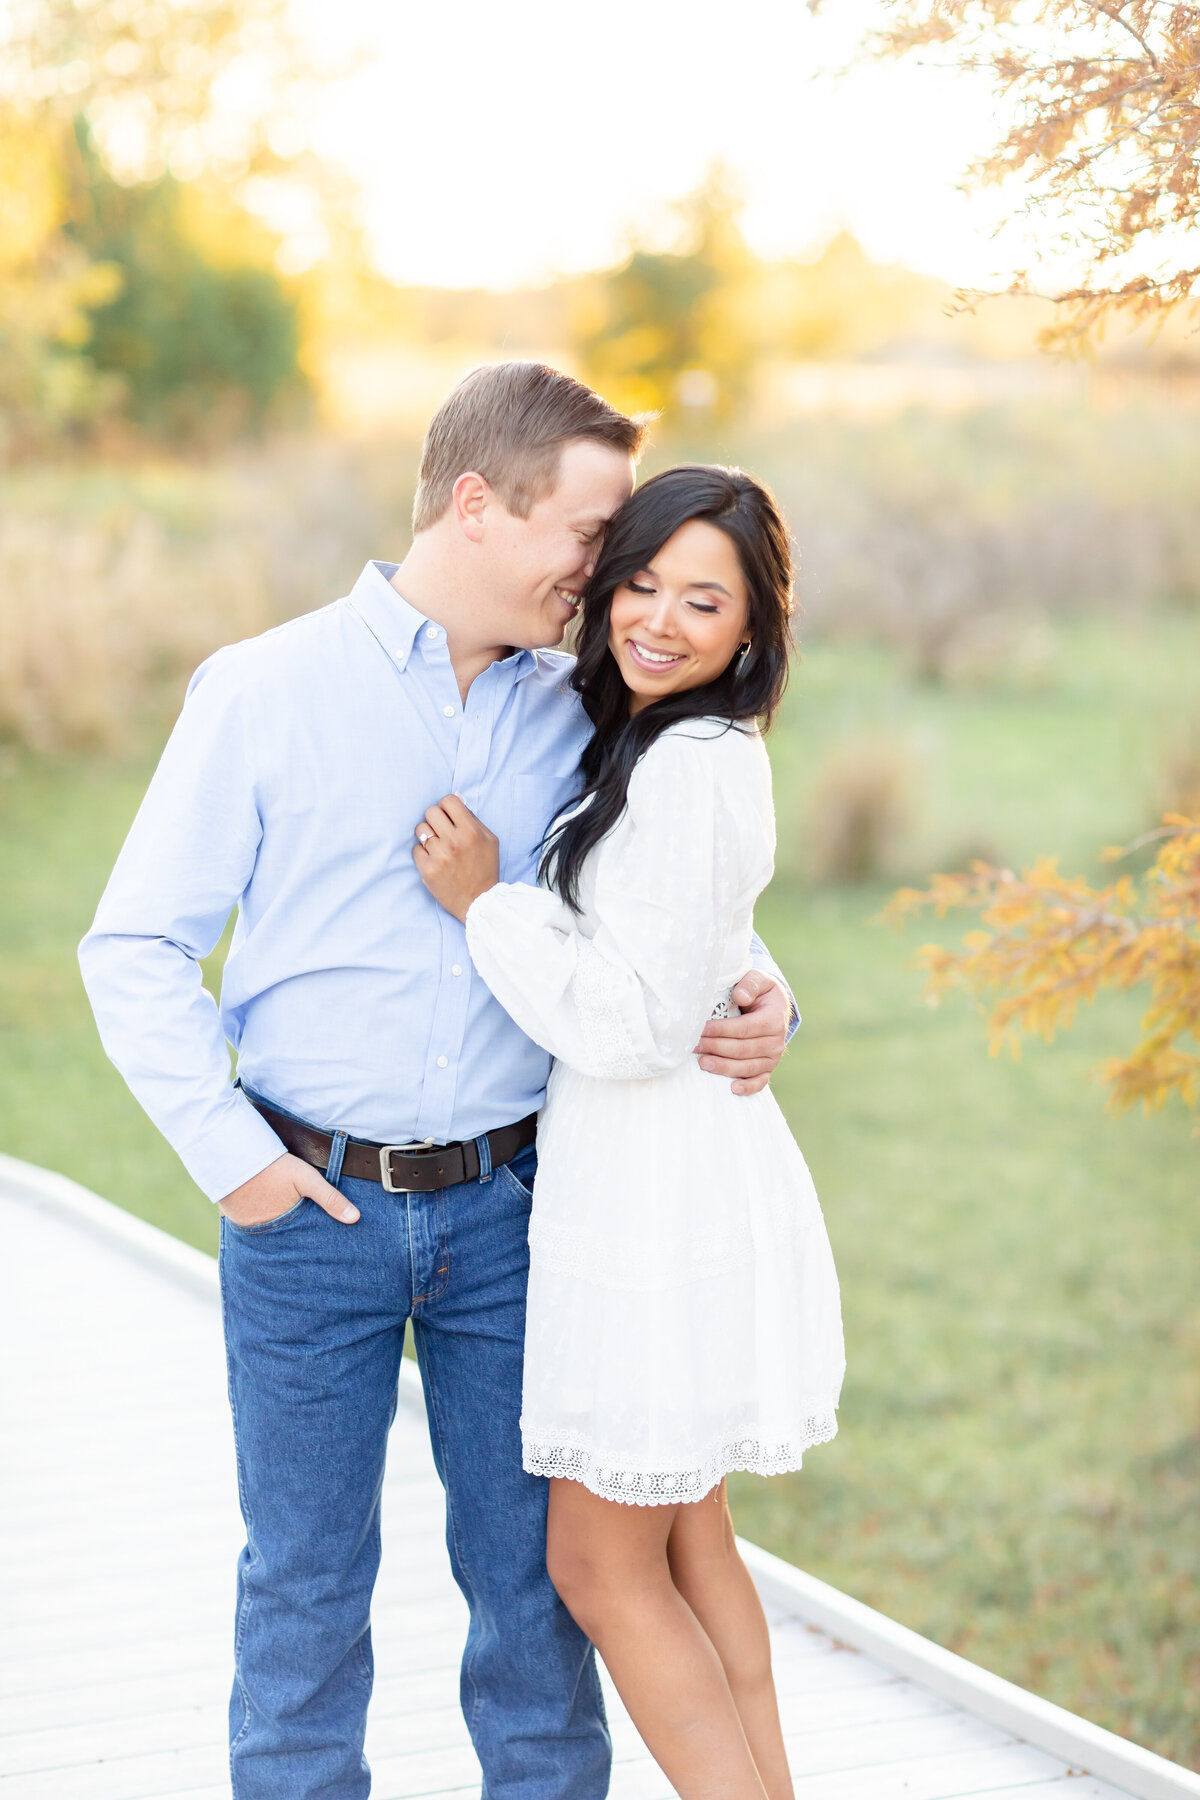 Analicia+Regan_EngagementSession_HannahCharisPhotography-281